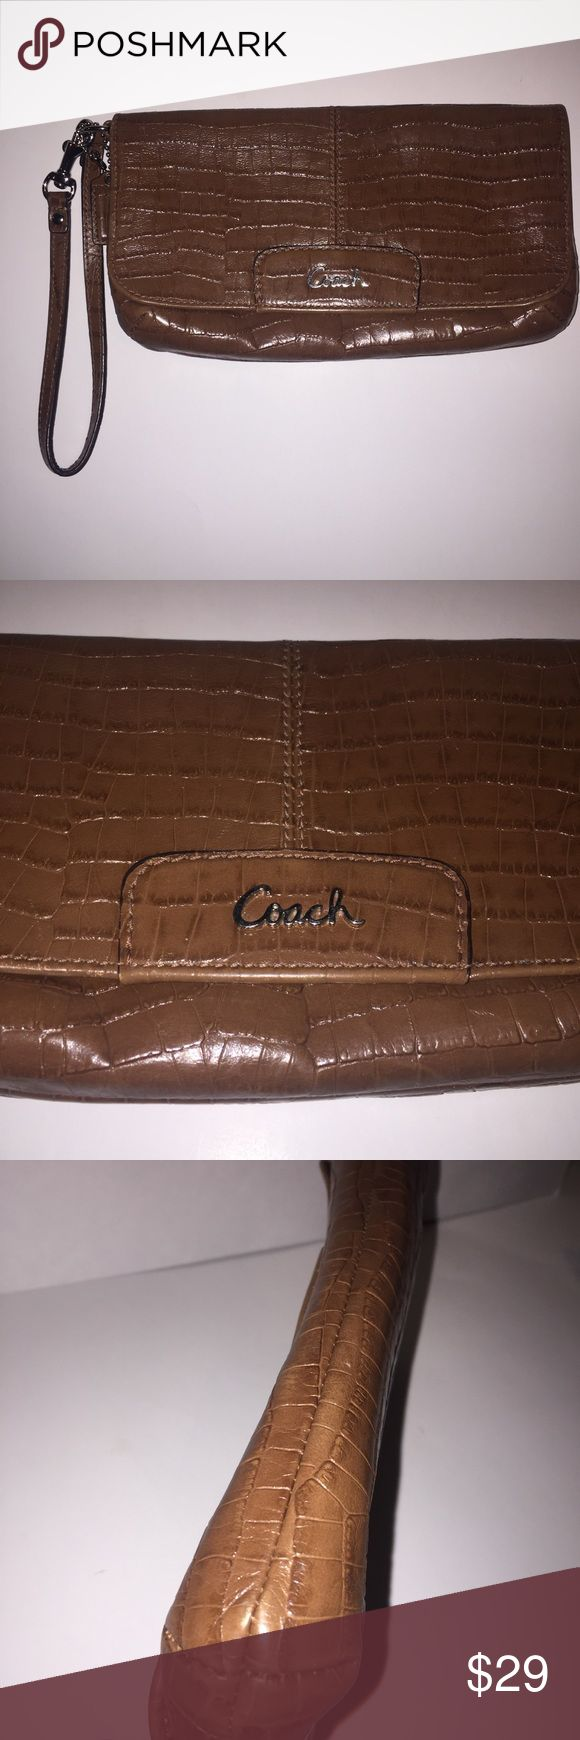 Coach Wristlet Clutch Brown Embossed Leather Coach Women's Wristlet Brown embossed leather Pink inside 1 large compartment with 1 side pocket Coach Bags Clutches & Wristlets